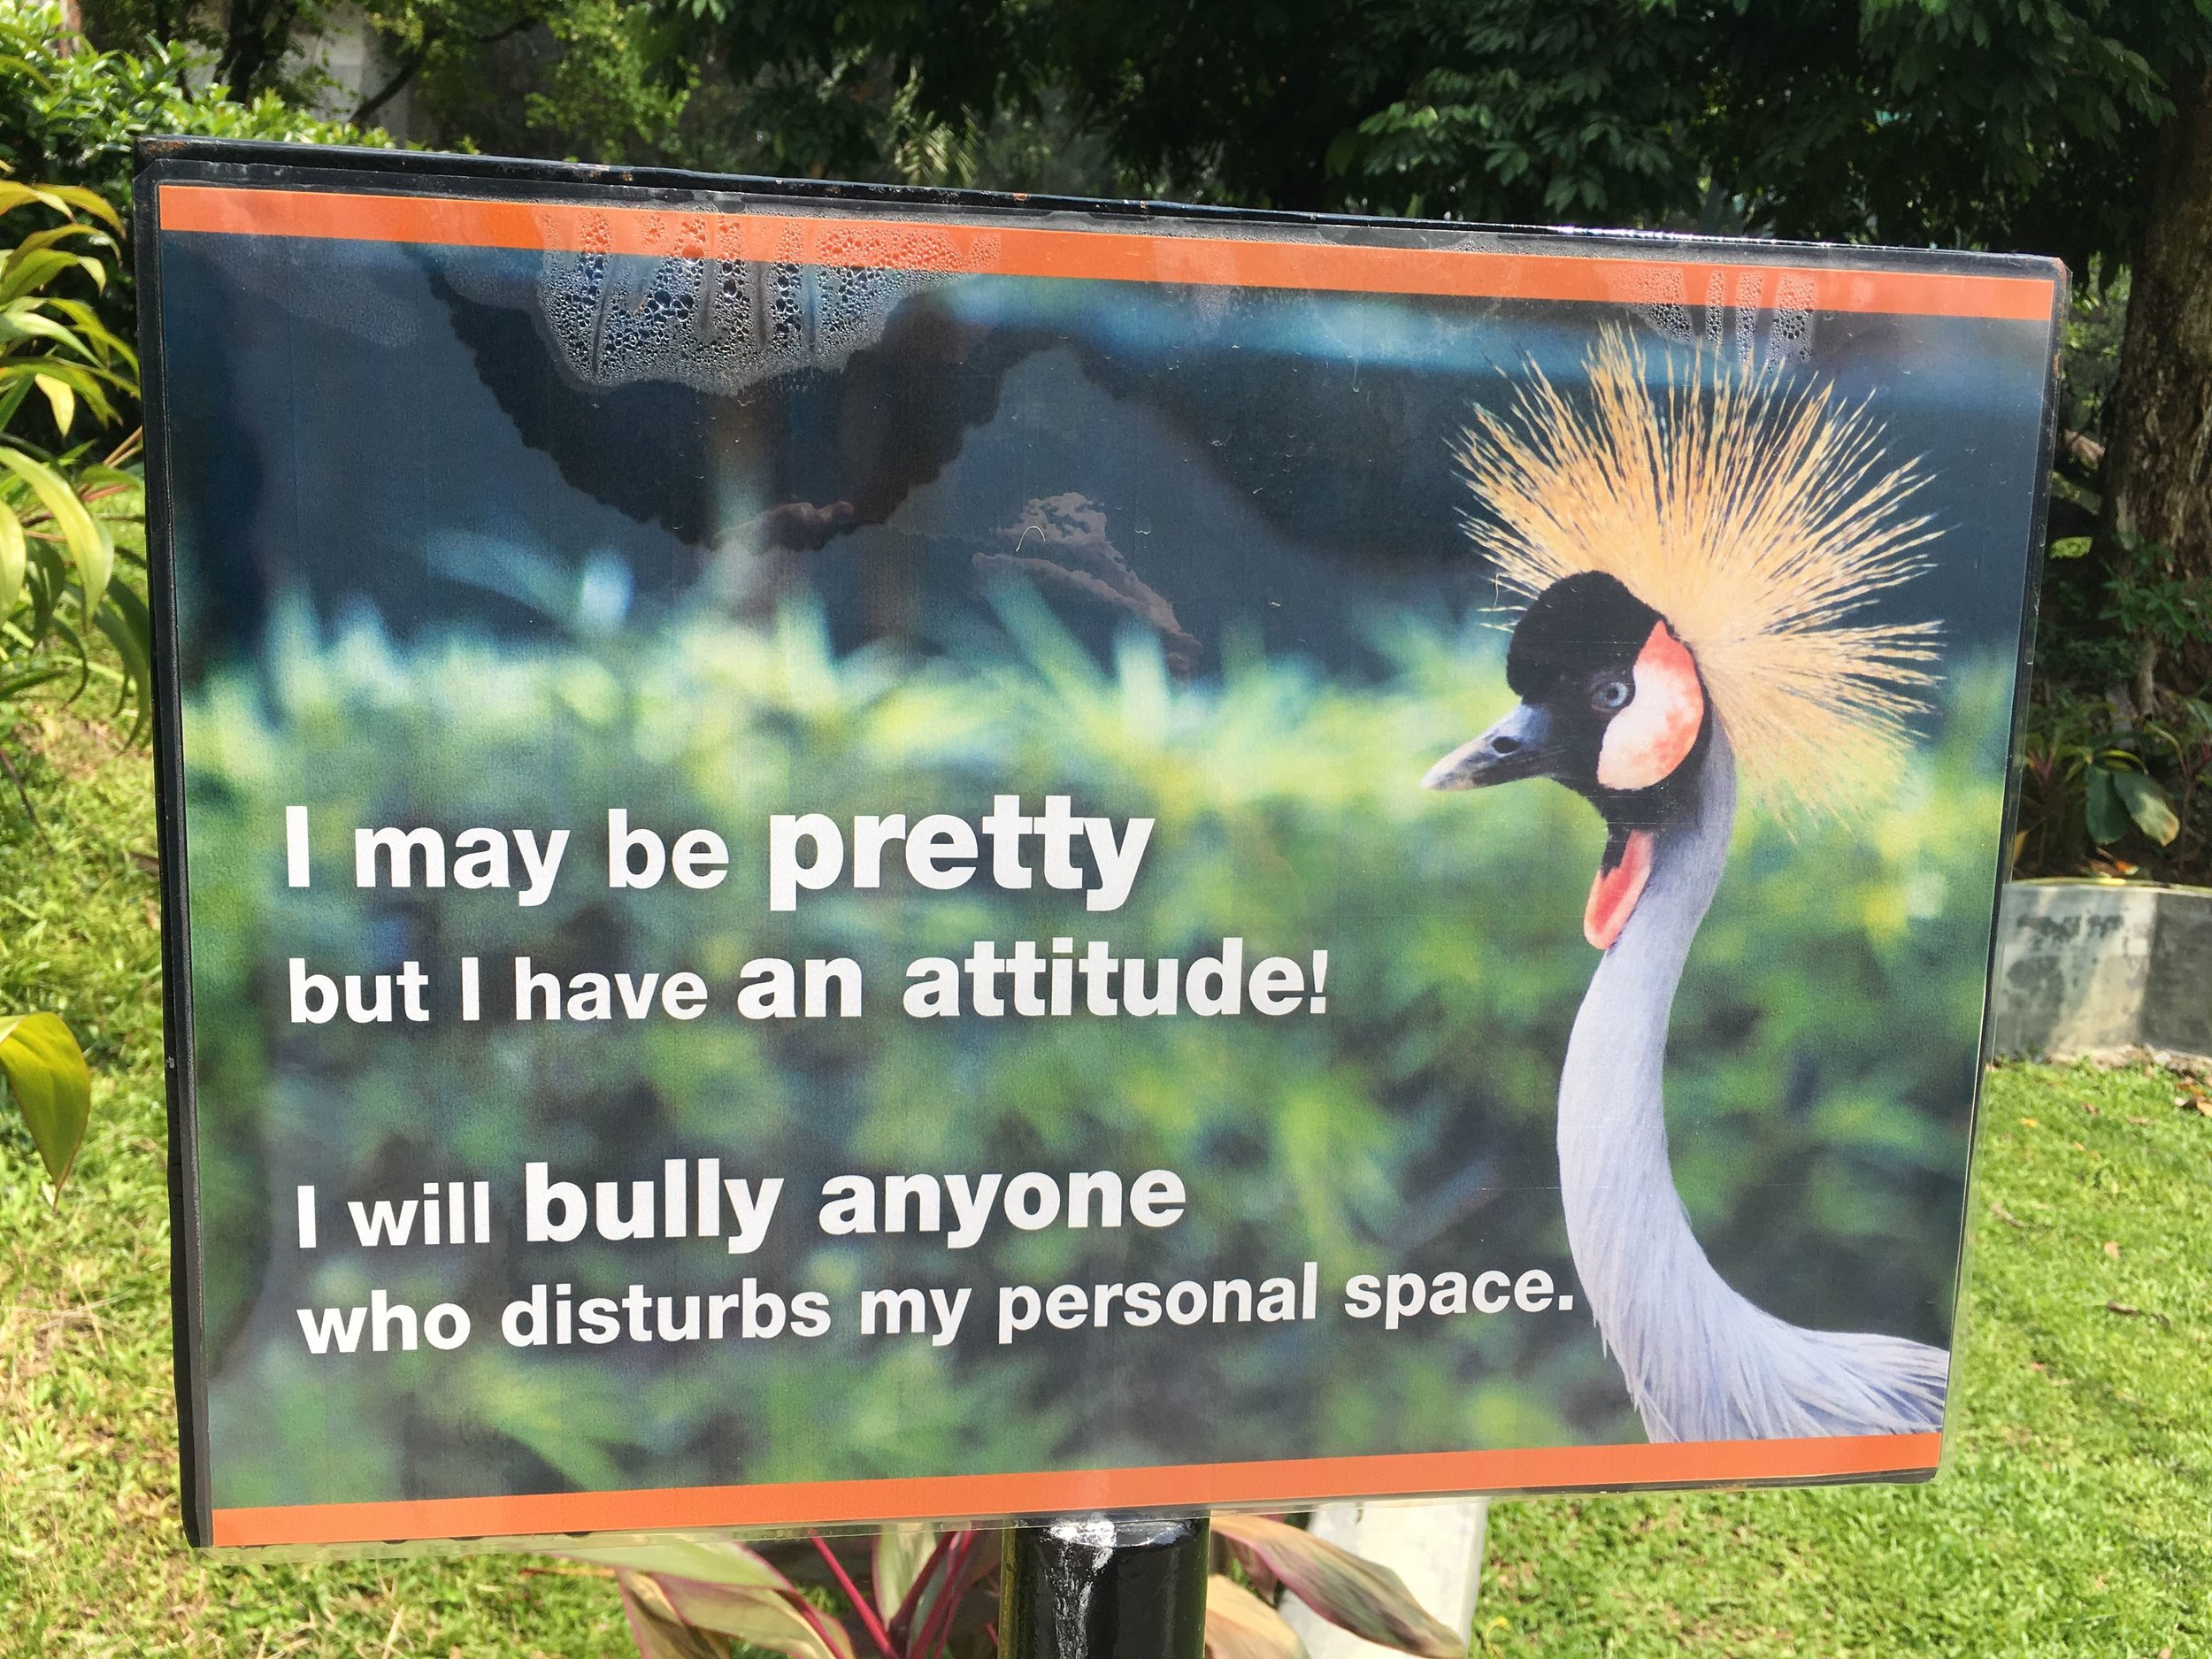 watch out for grumpy birds!